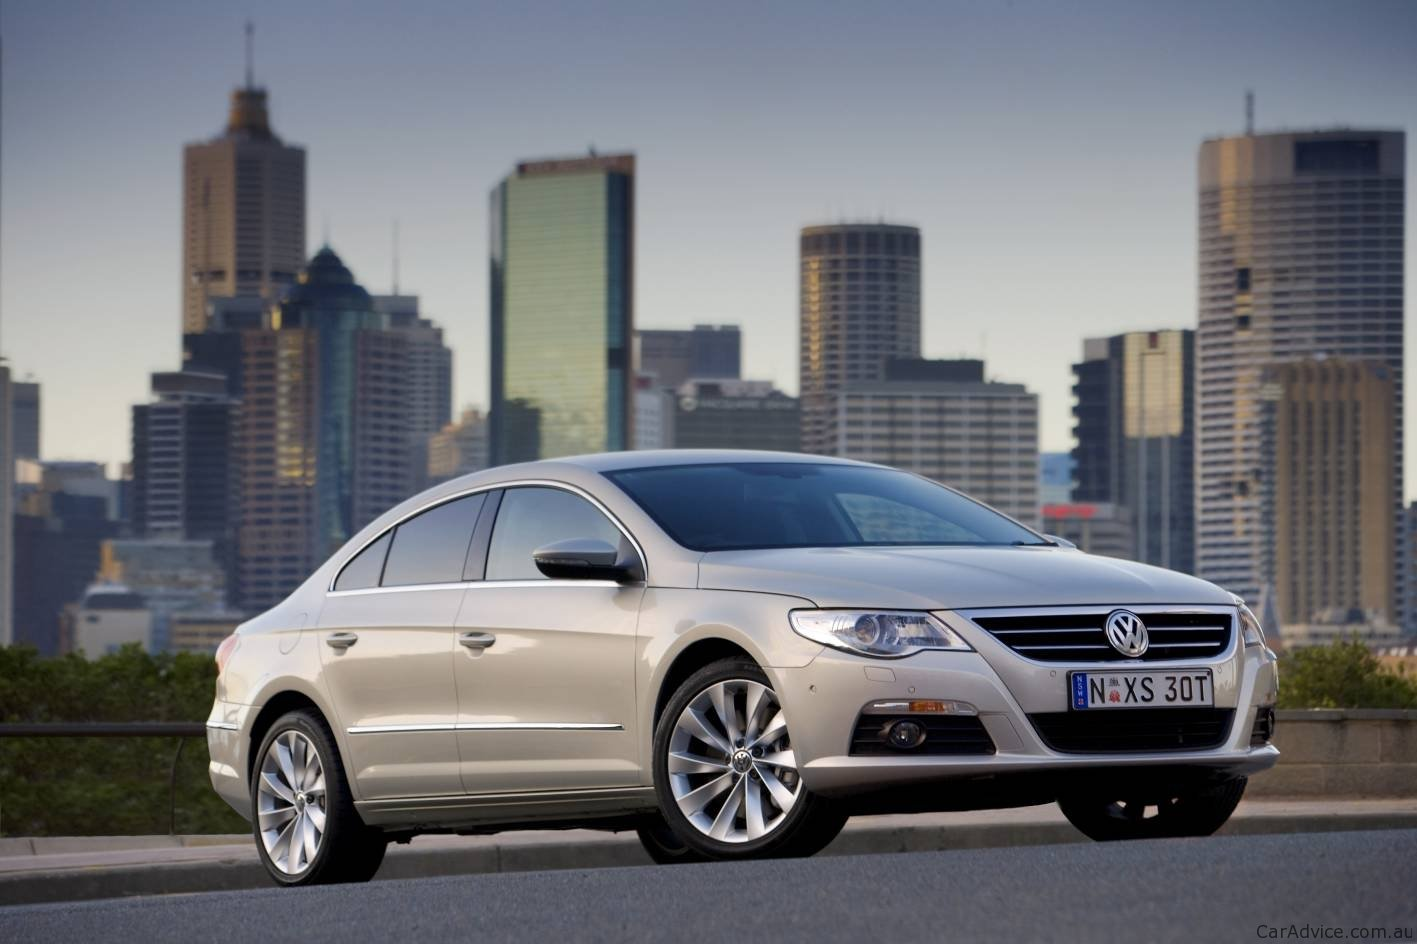 2011 volkswagen passat cc updated with bluemotion technology photos 1 of 8. Black Bedroom Furniture Sets. Home Design Ideas